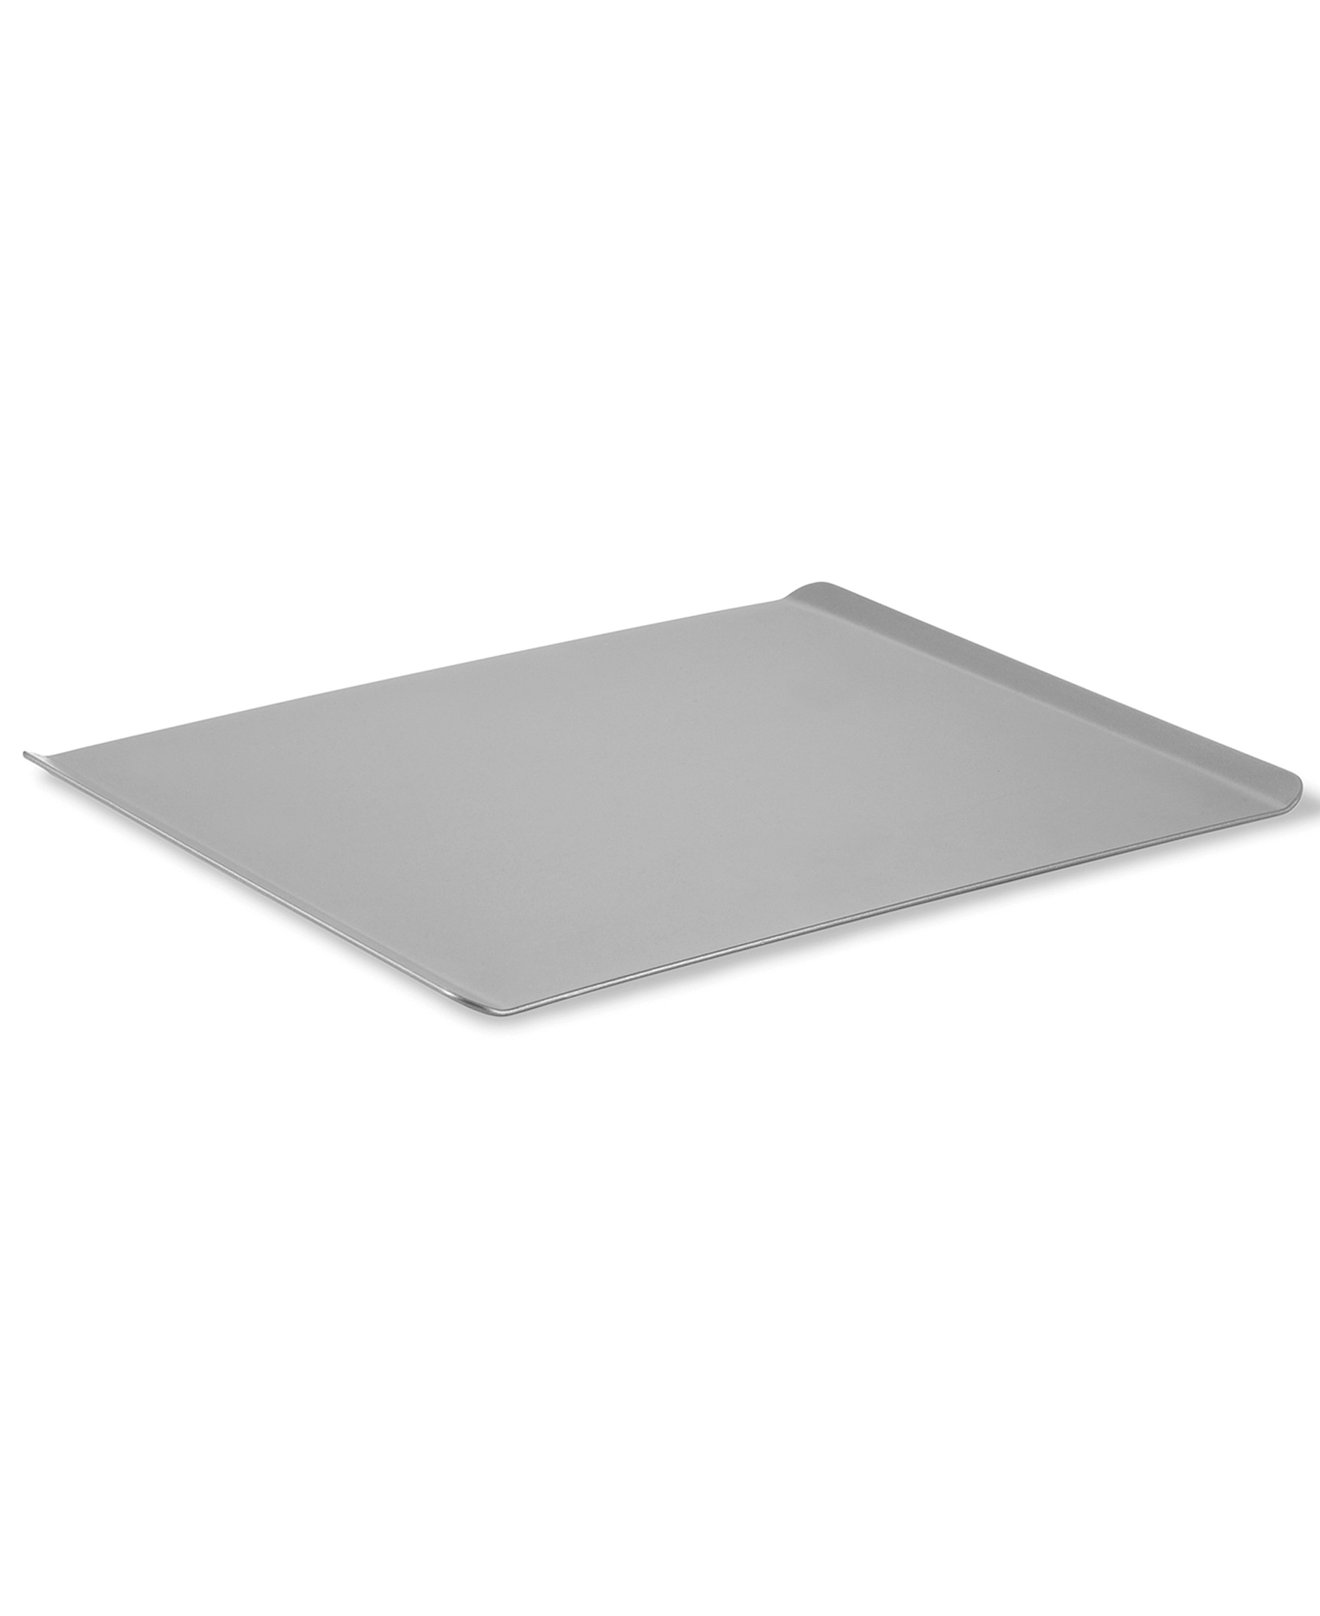 insulated-cookie-sheet